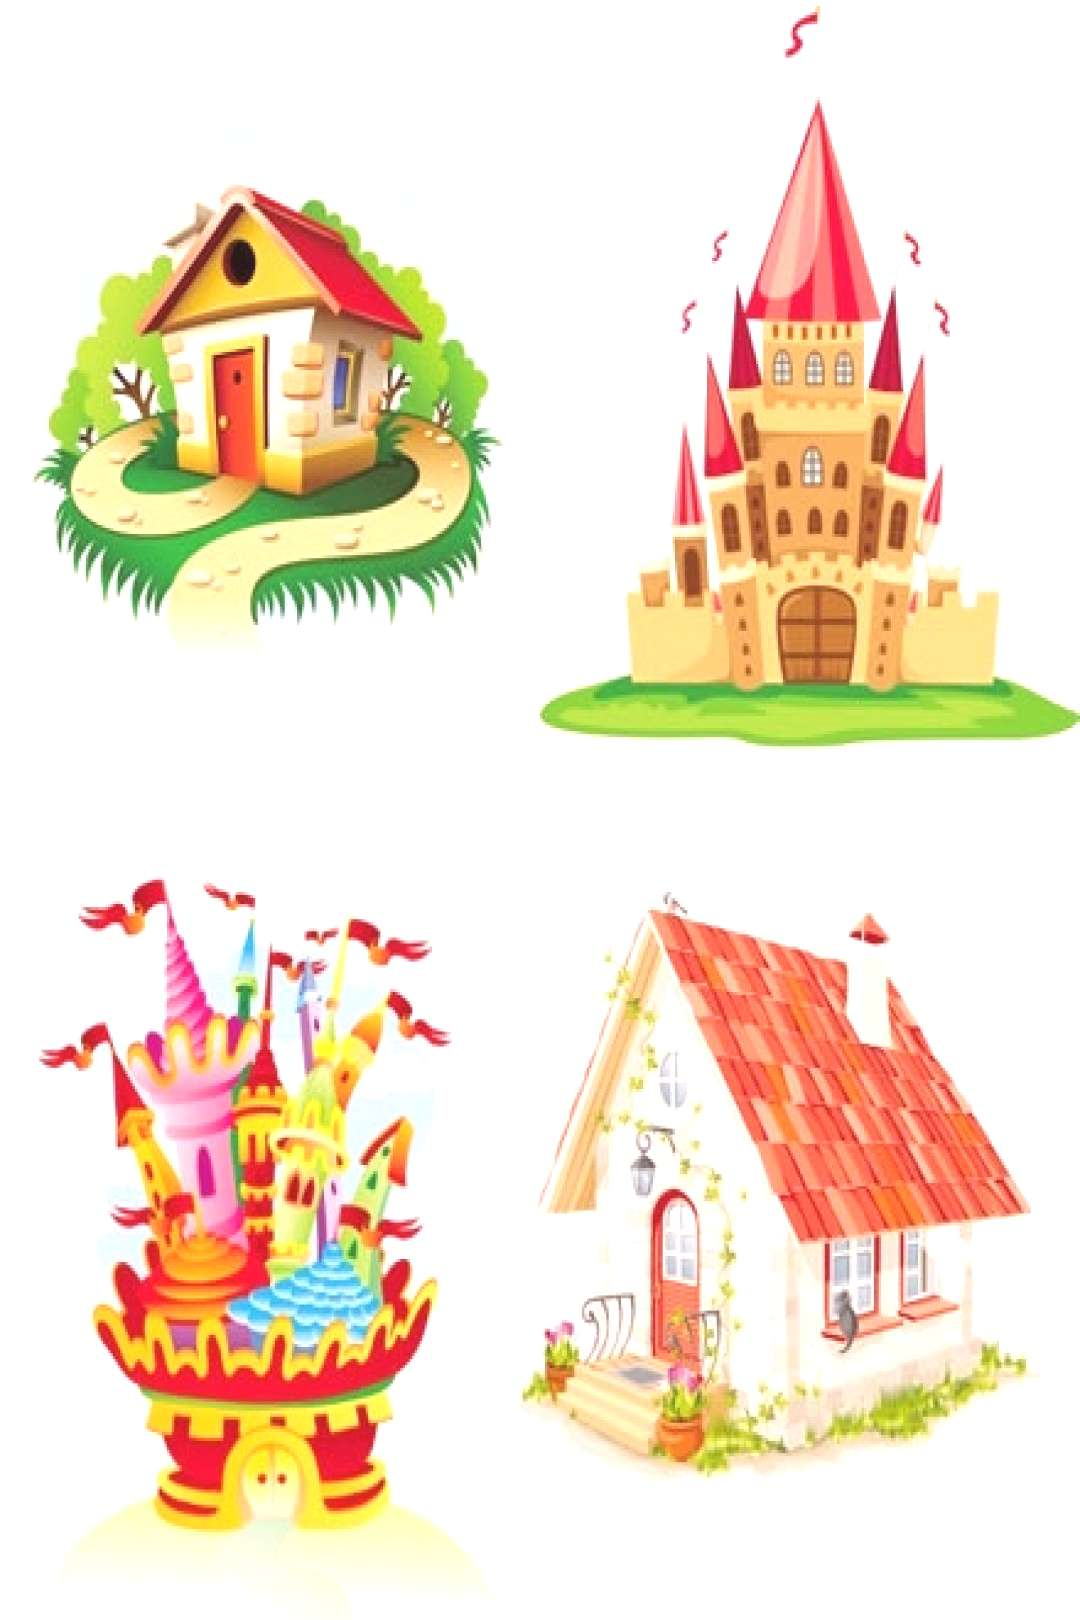 Castles houses icons colorful cartoon sketch Free vector in Encapsulated PostScript eps ( .eps ) ve